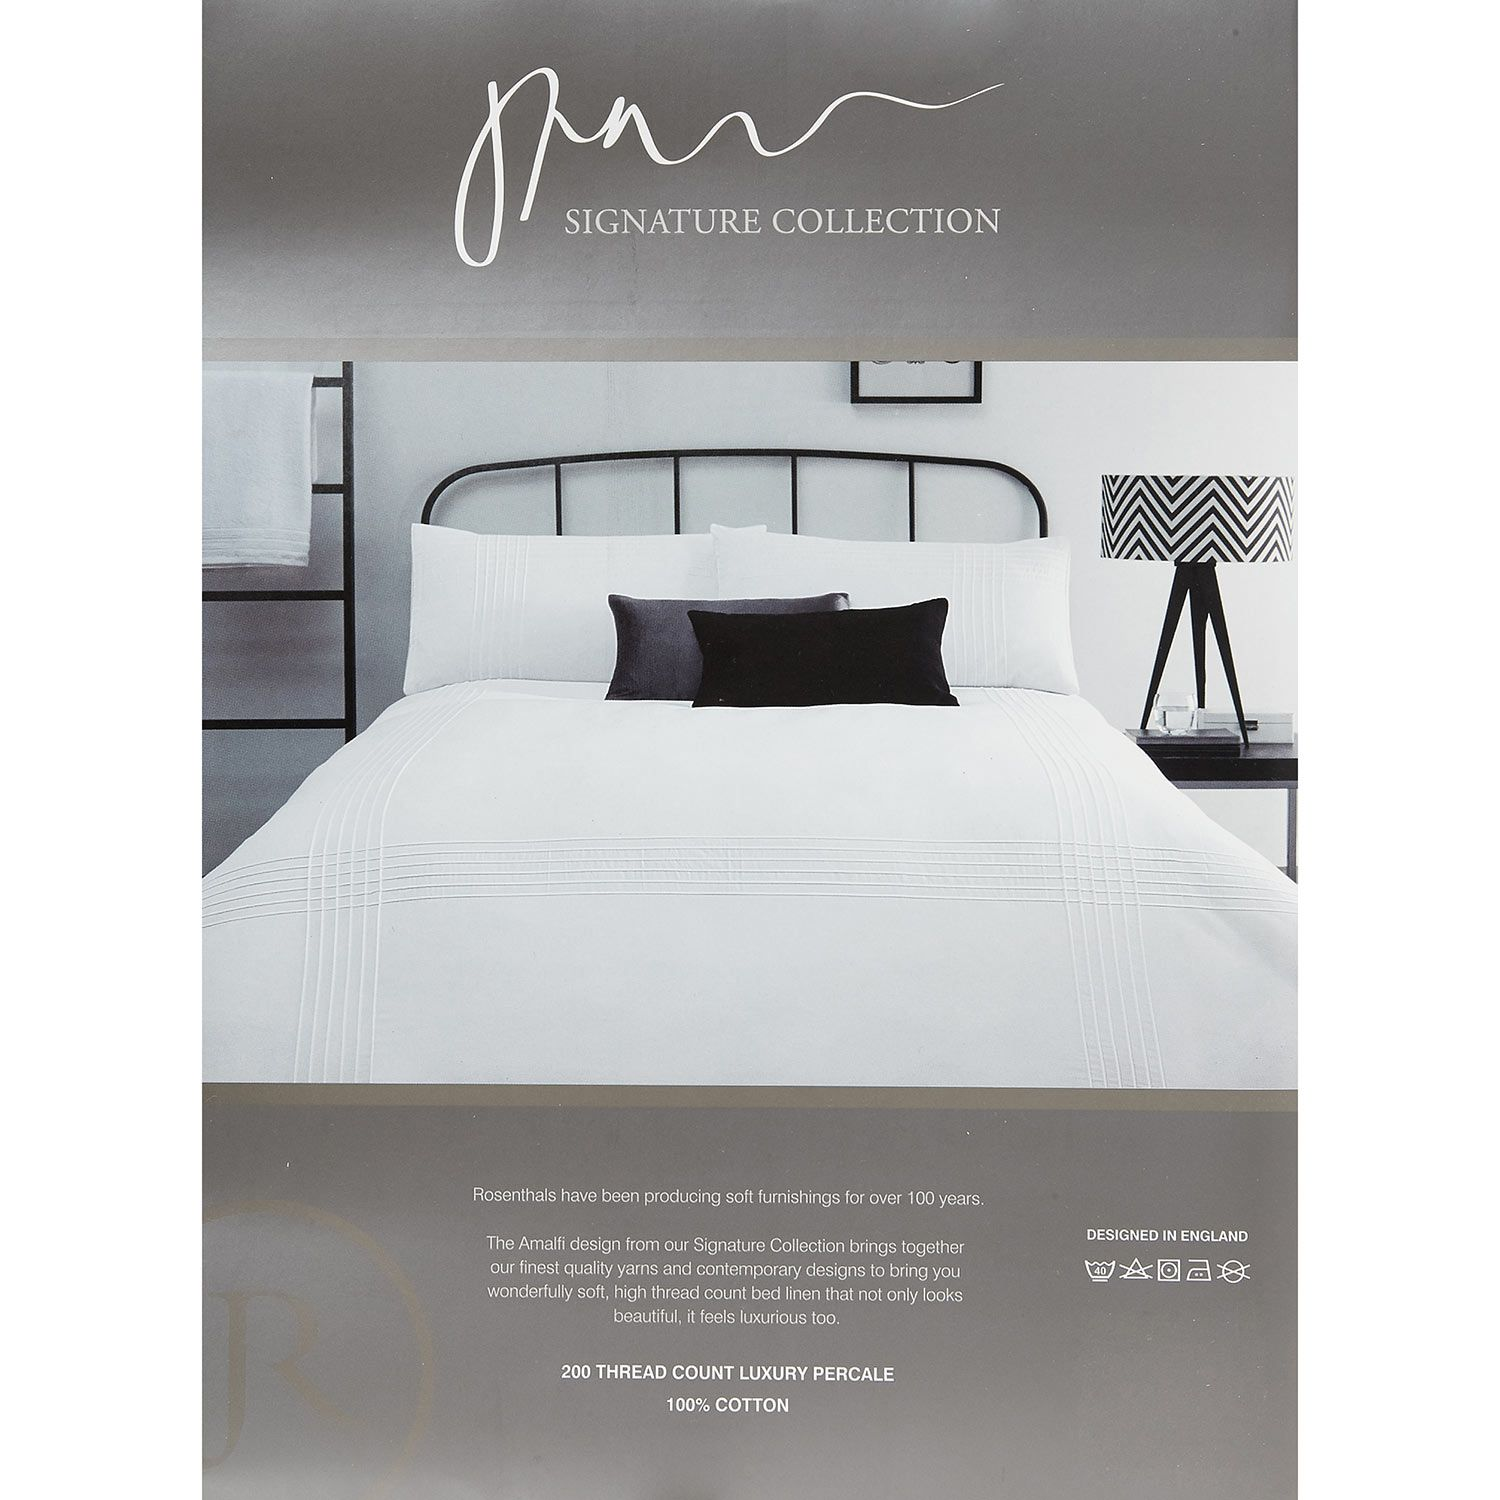 Rosenthal White King Duvet Set Tk Maxx King Duvet Set Duvet